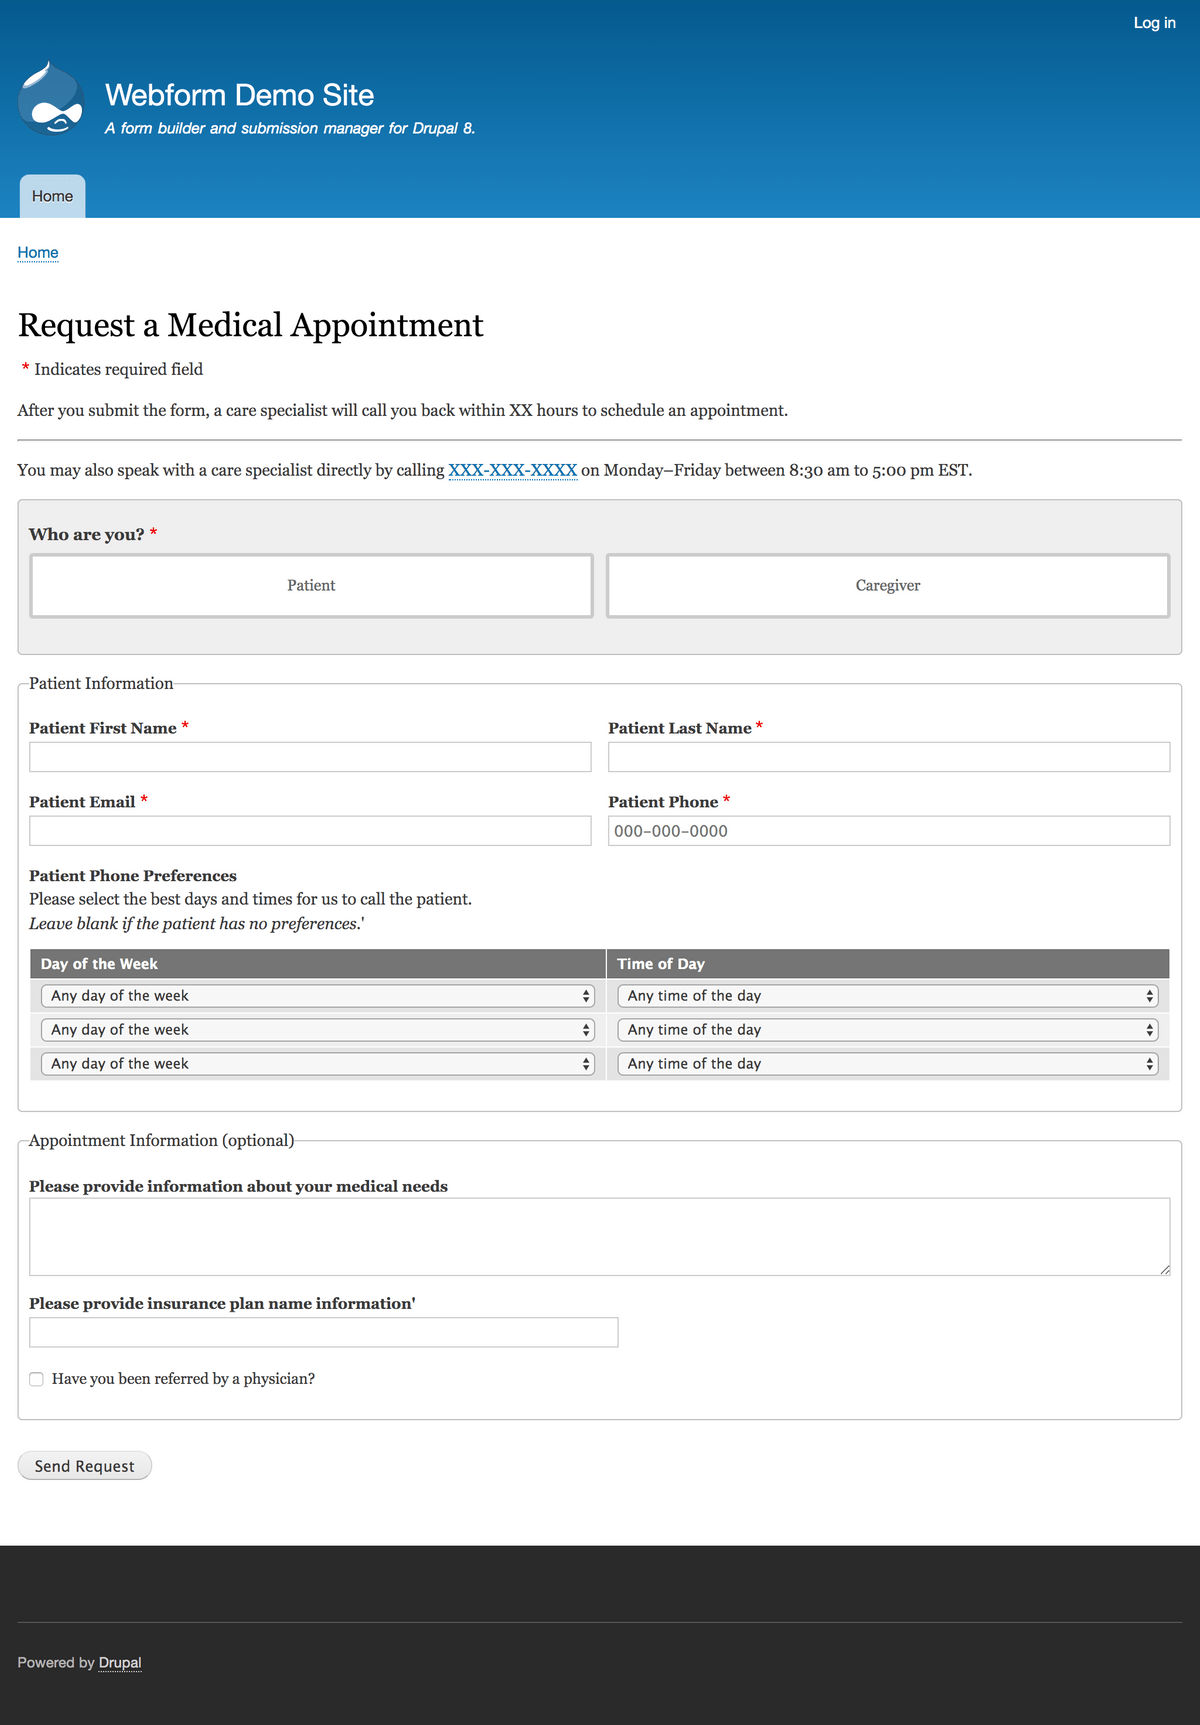 Request a Medical Appointment Template